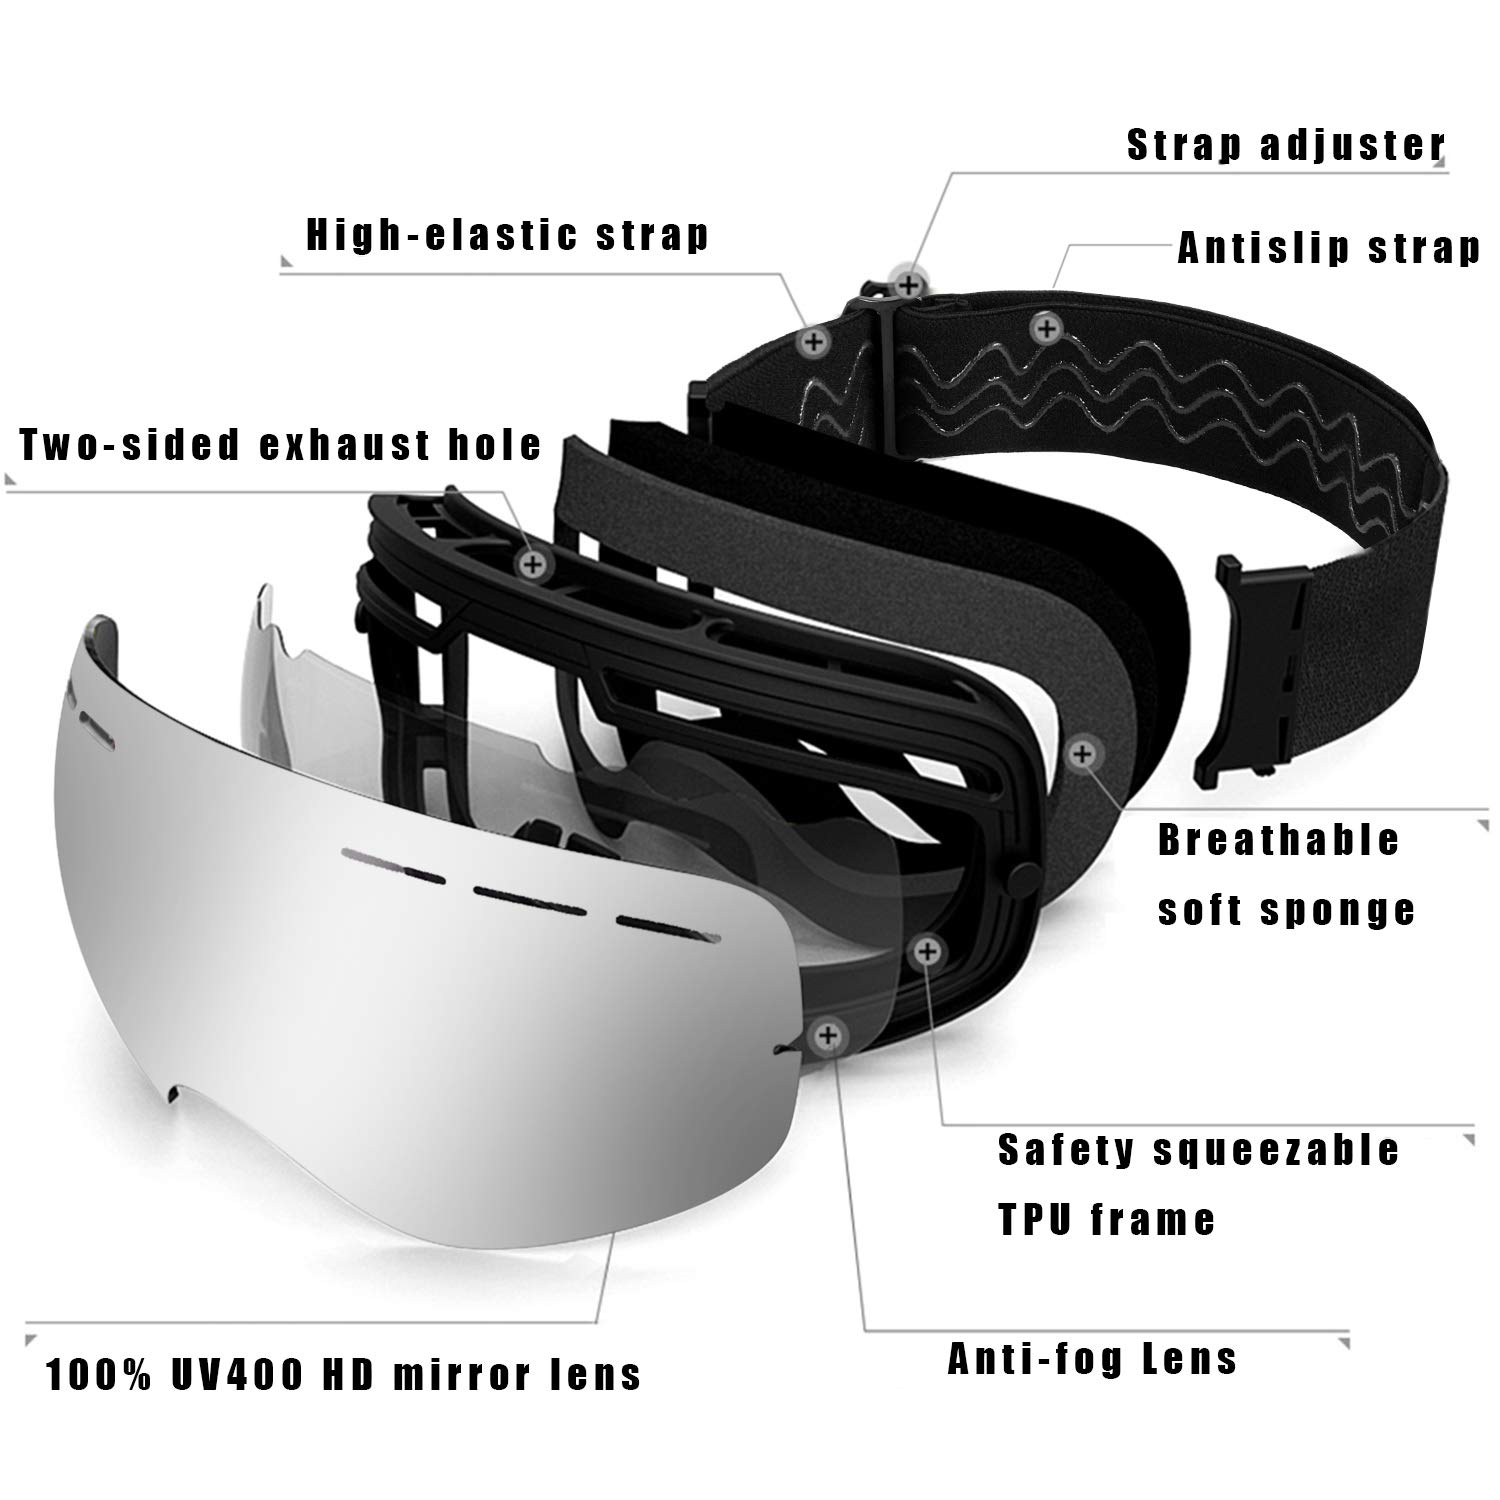 UPSKR Ski Goggles Anti Fog Snowboard Goggles Double Lens Silver with 180/° Wide View 100/% UV400 Protection,OTG Premium Snow Goggles for Men /& Women /& Teenage